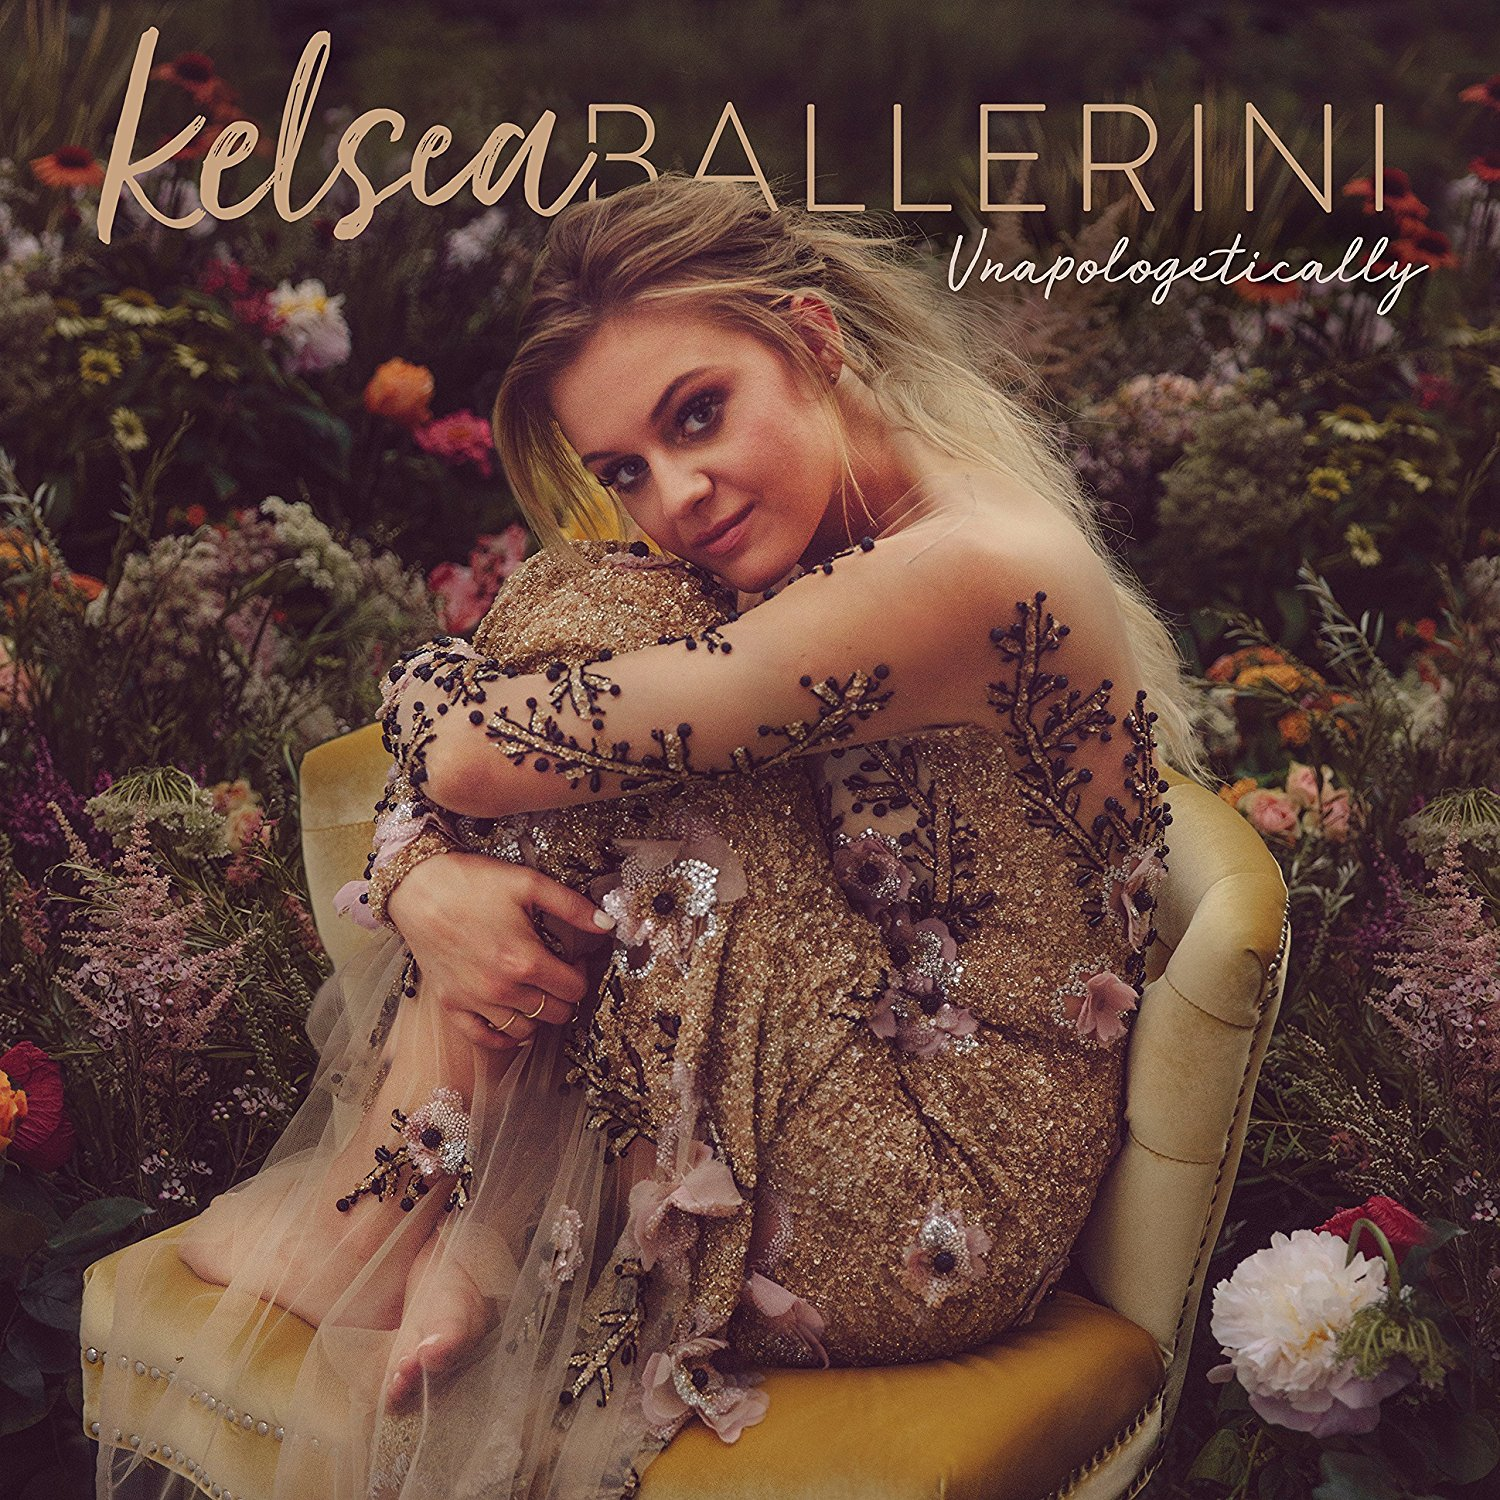 Kelsea Ballerini: Unapologetically